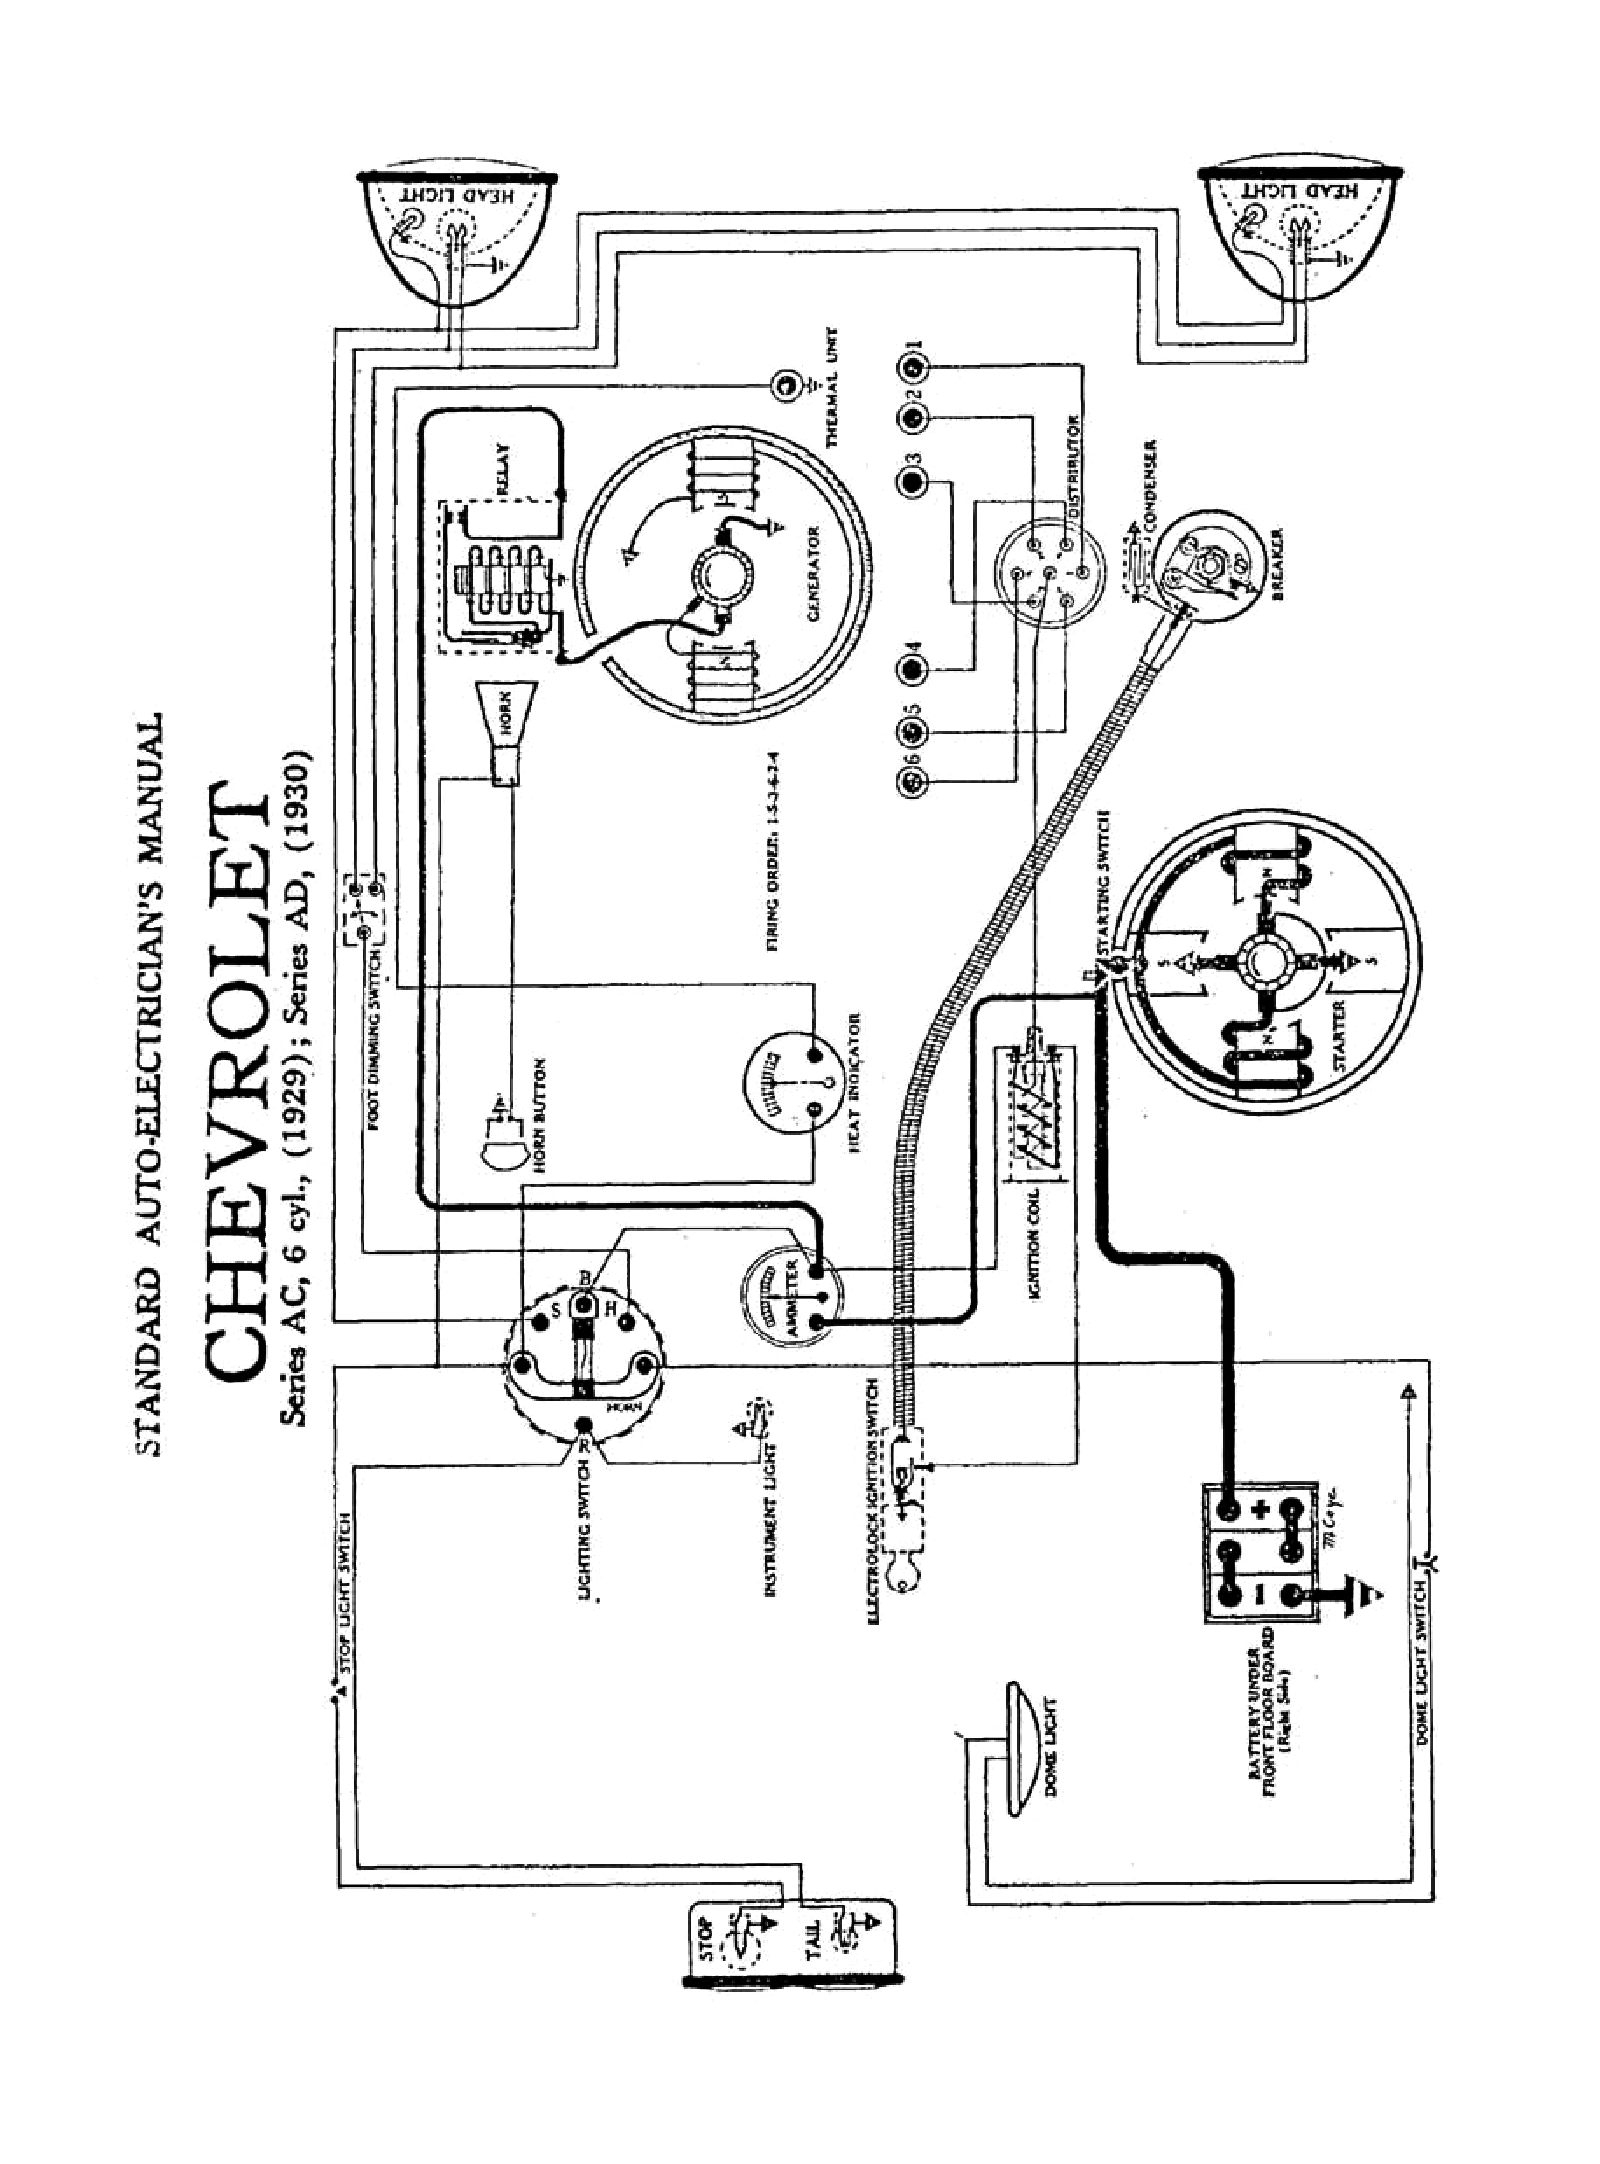 Lx 5786 Wiring Diagram Ignition Switch Mercury Outboard